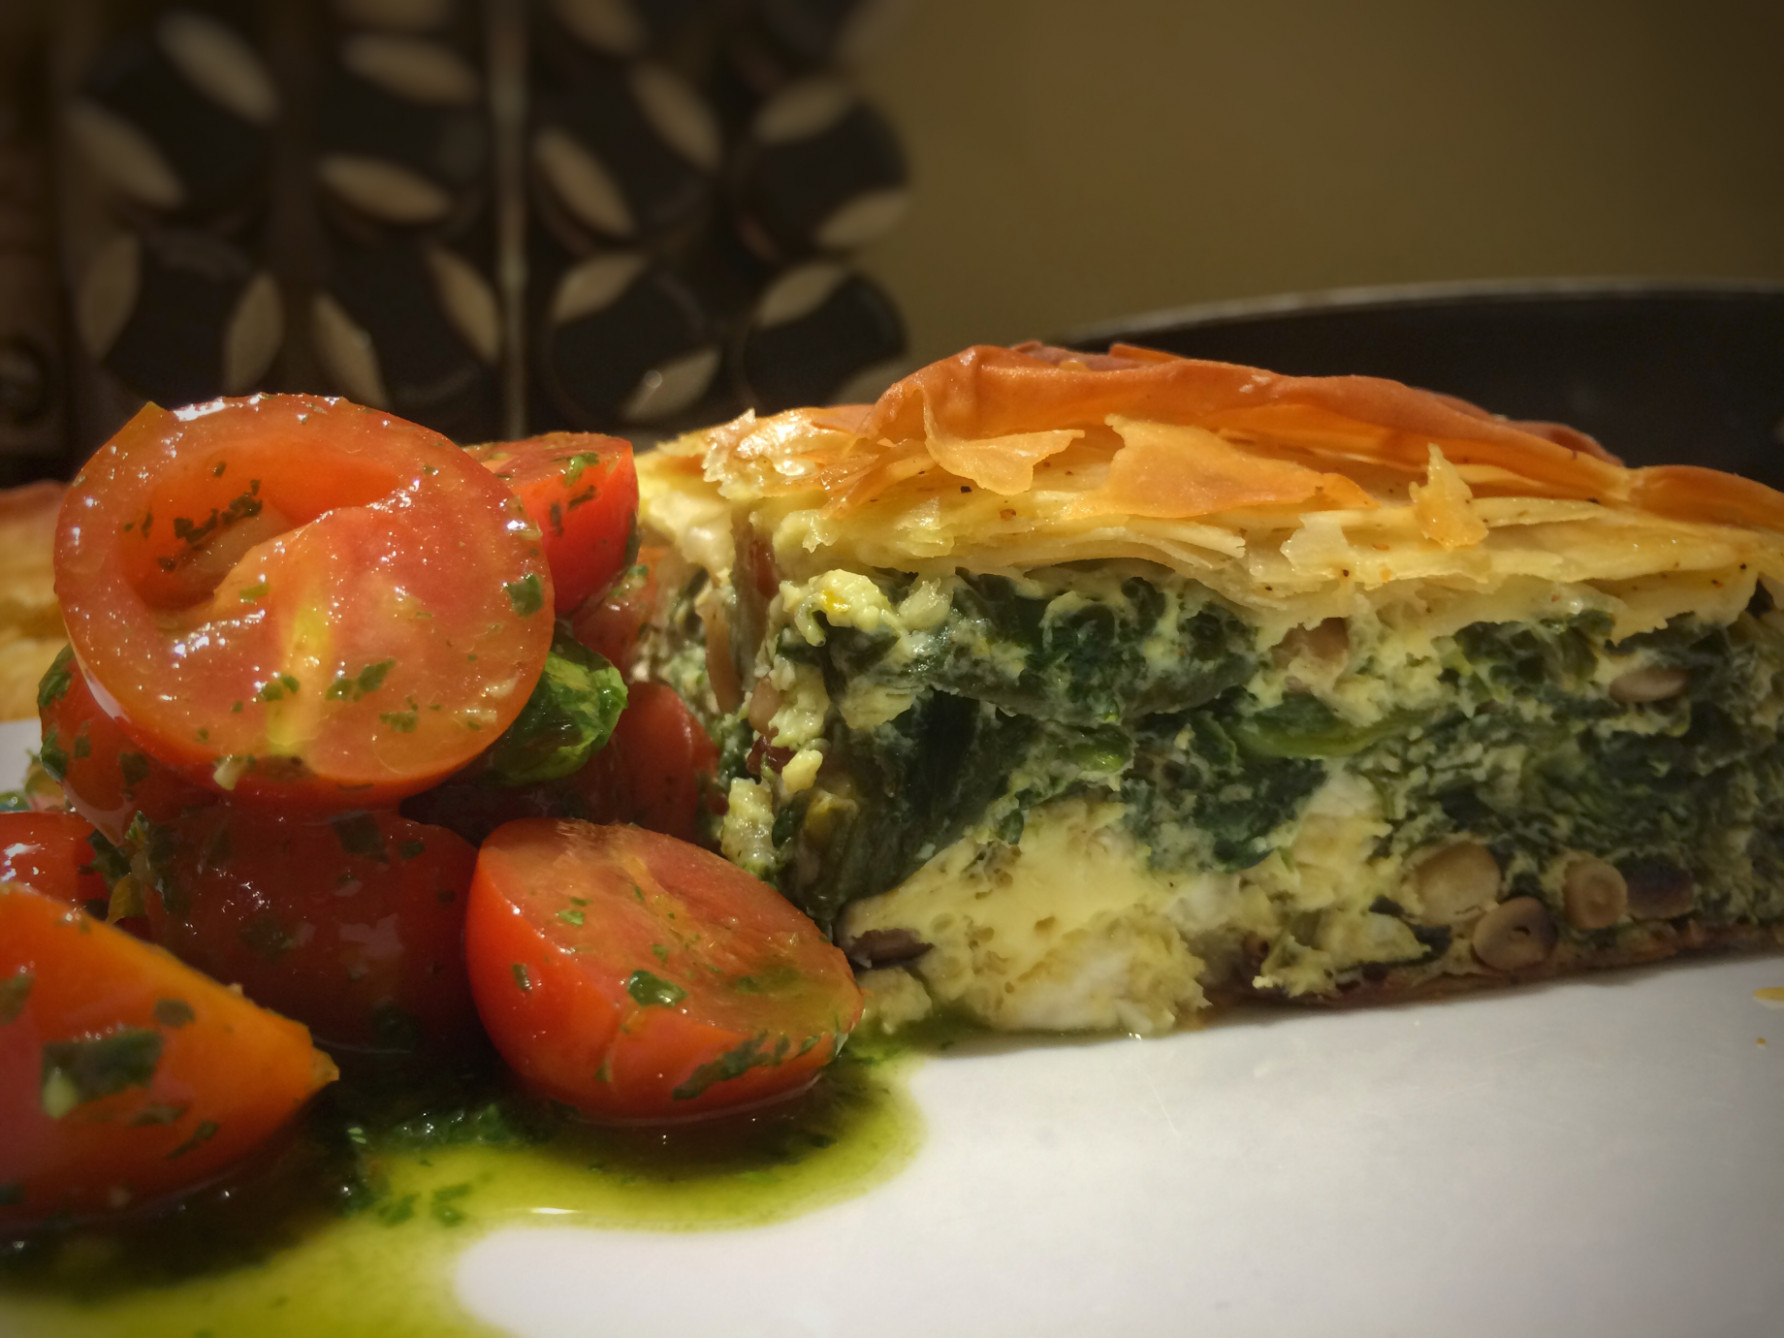 Feta and spinach pie in filo pastry | Season's Eatings - recipes using filo pastry vegetarian